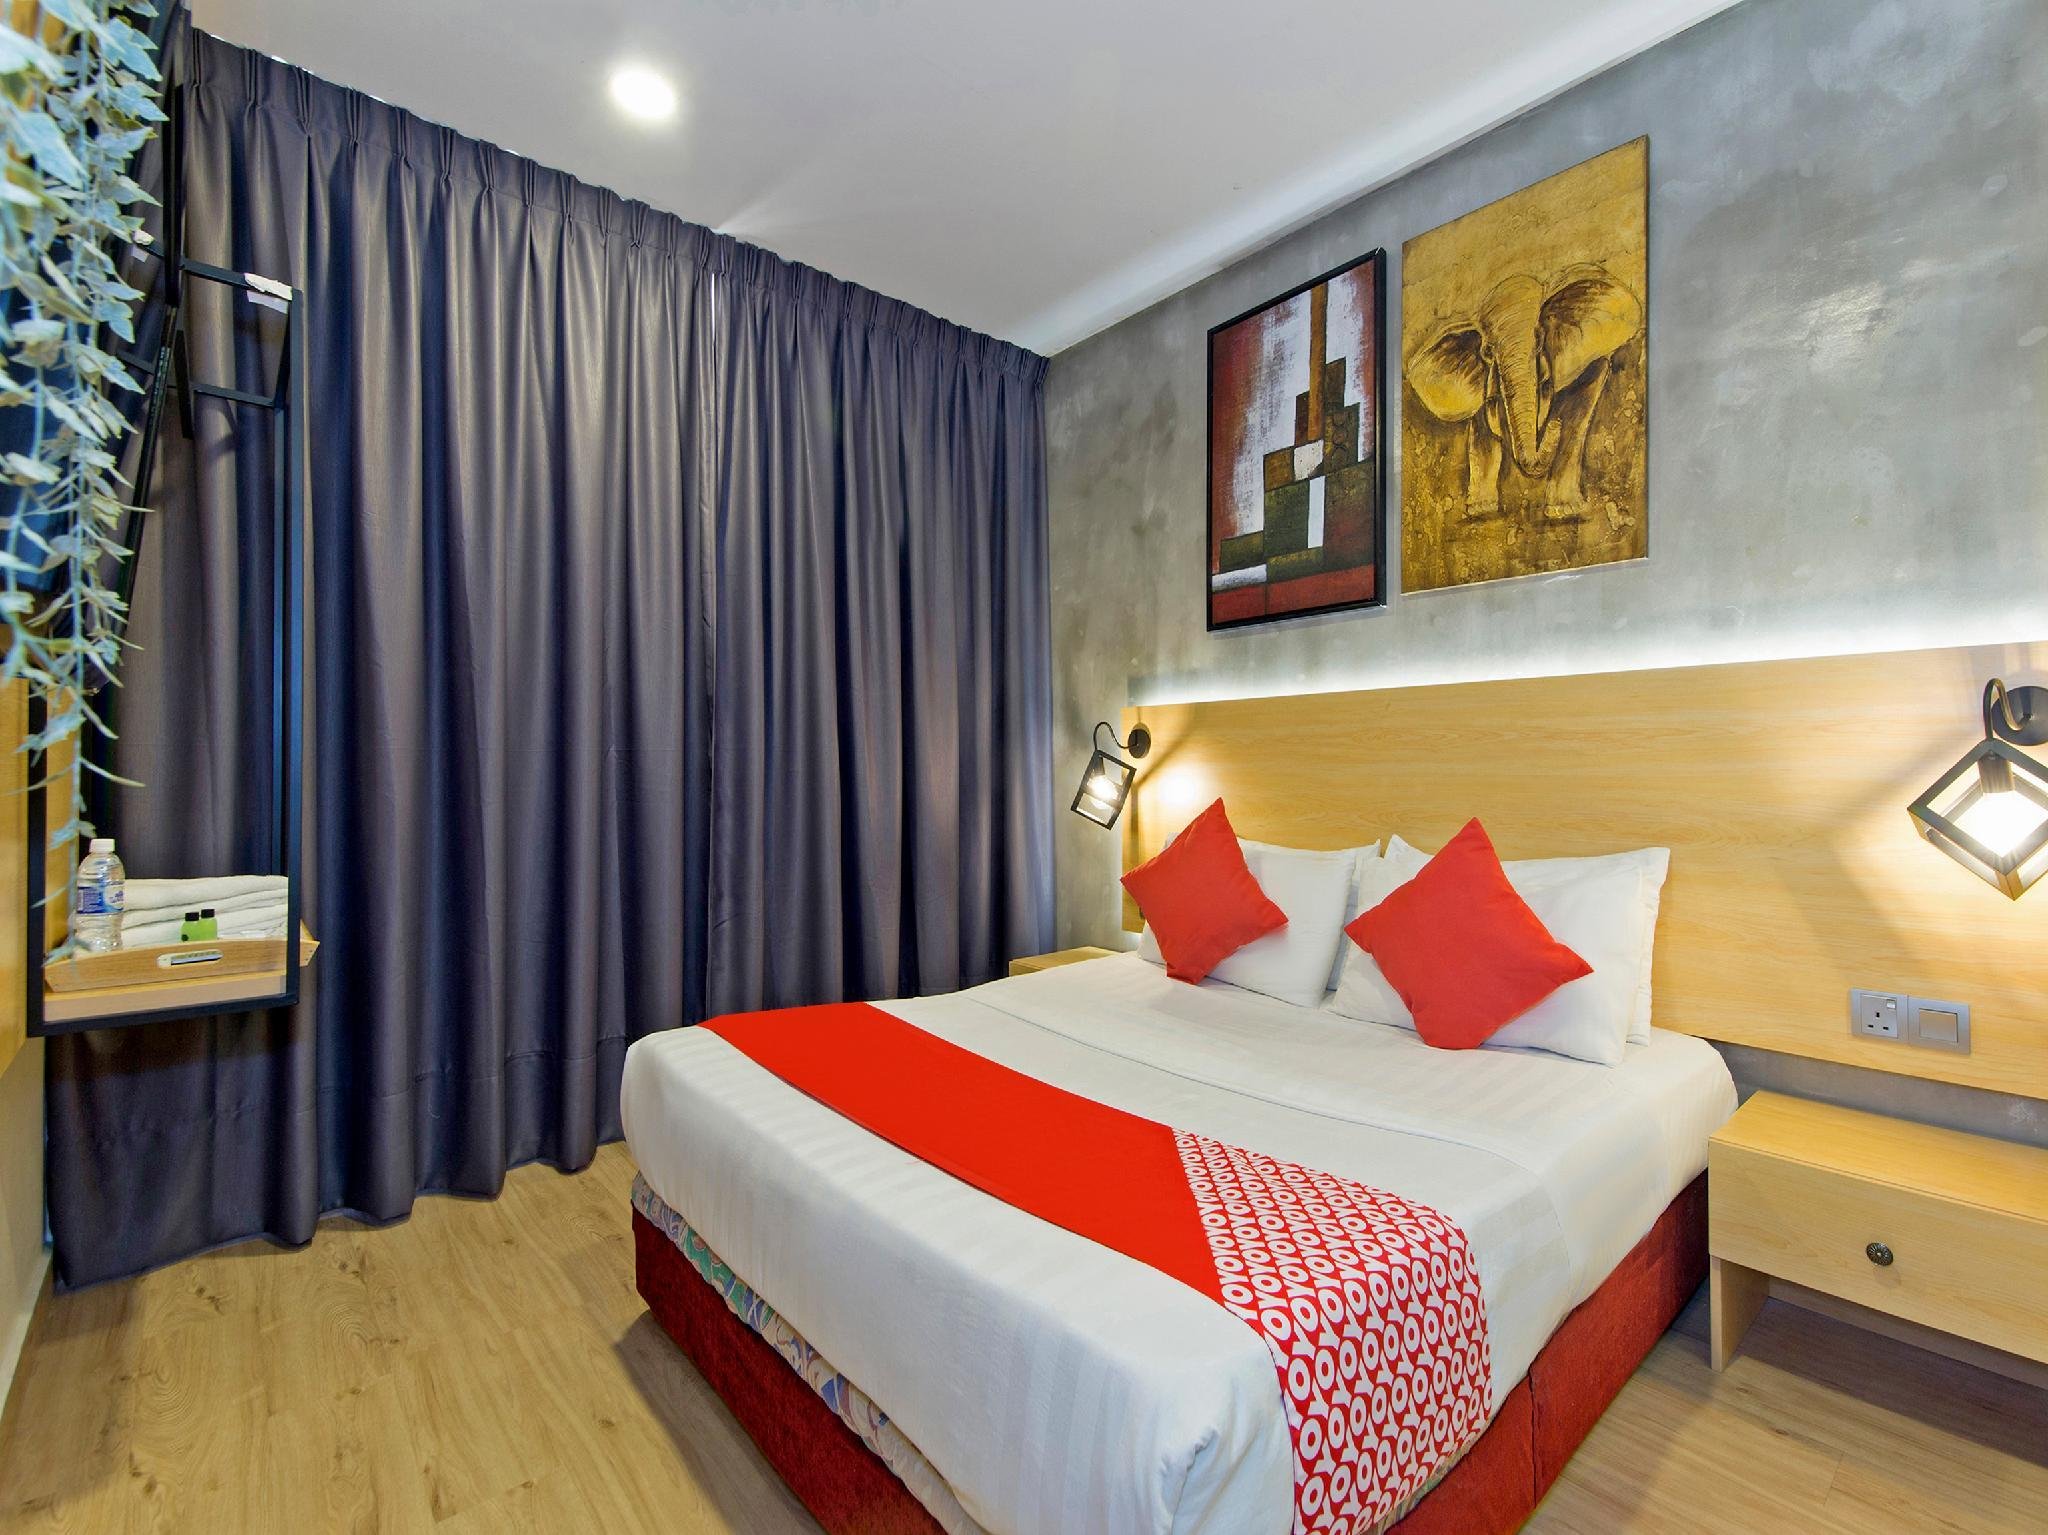 Raintree Boutique Hotel, Hulu Langat